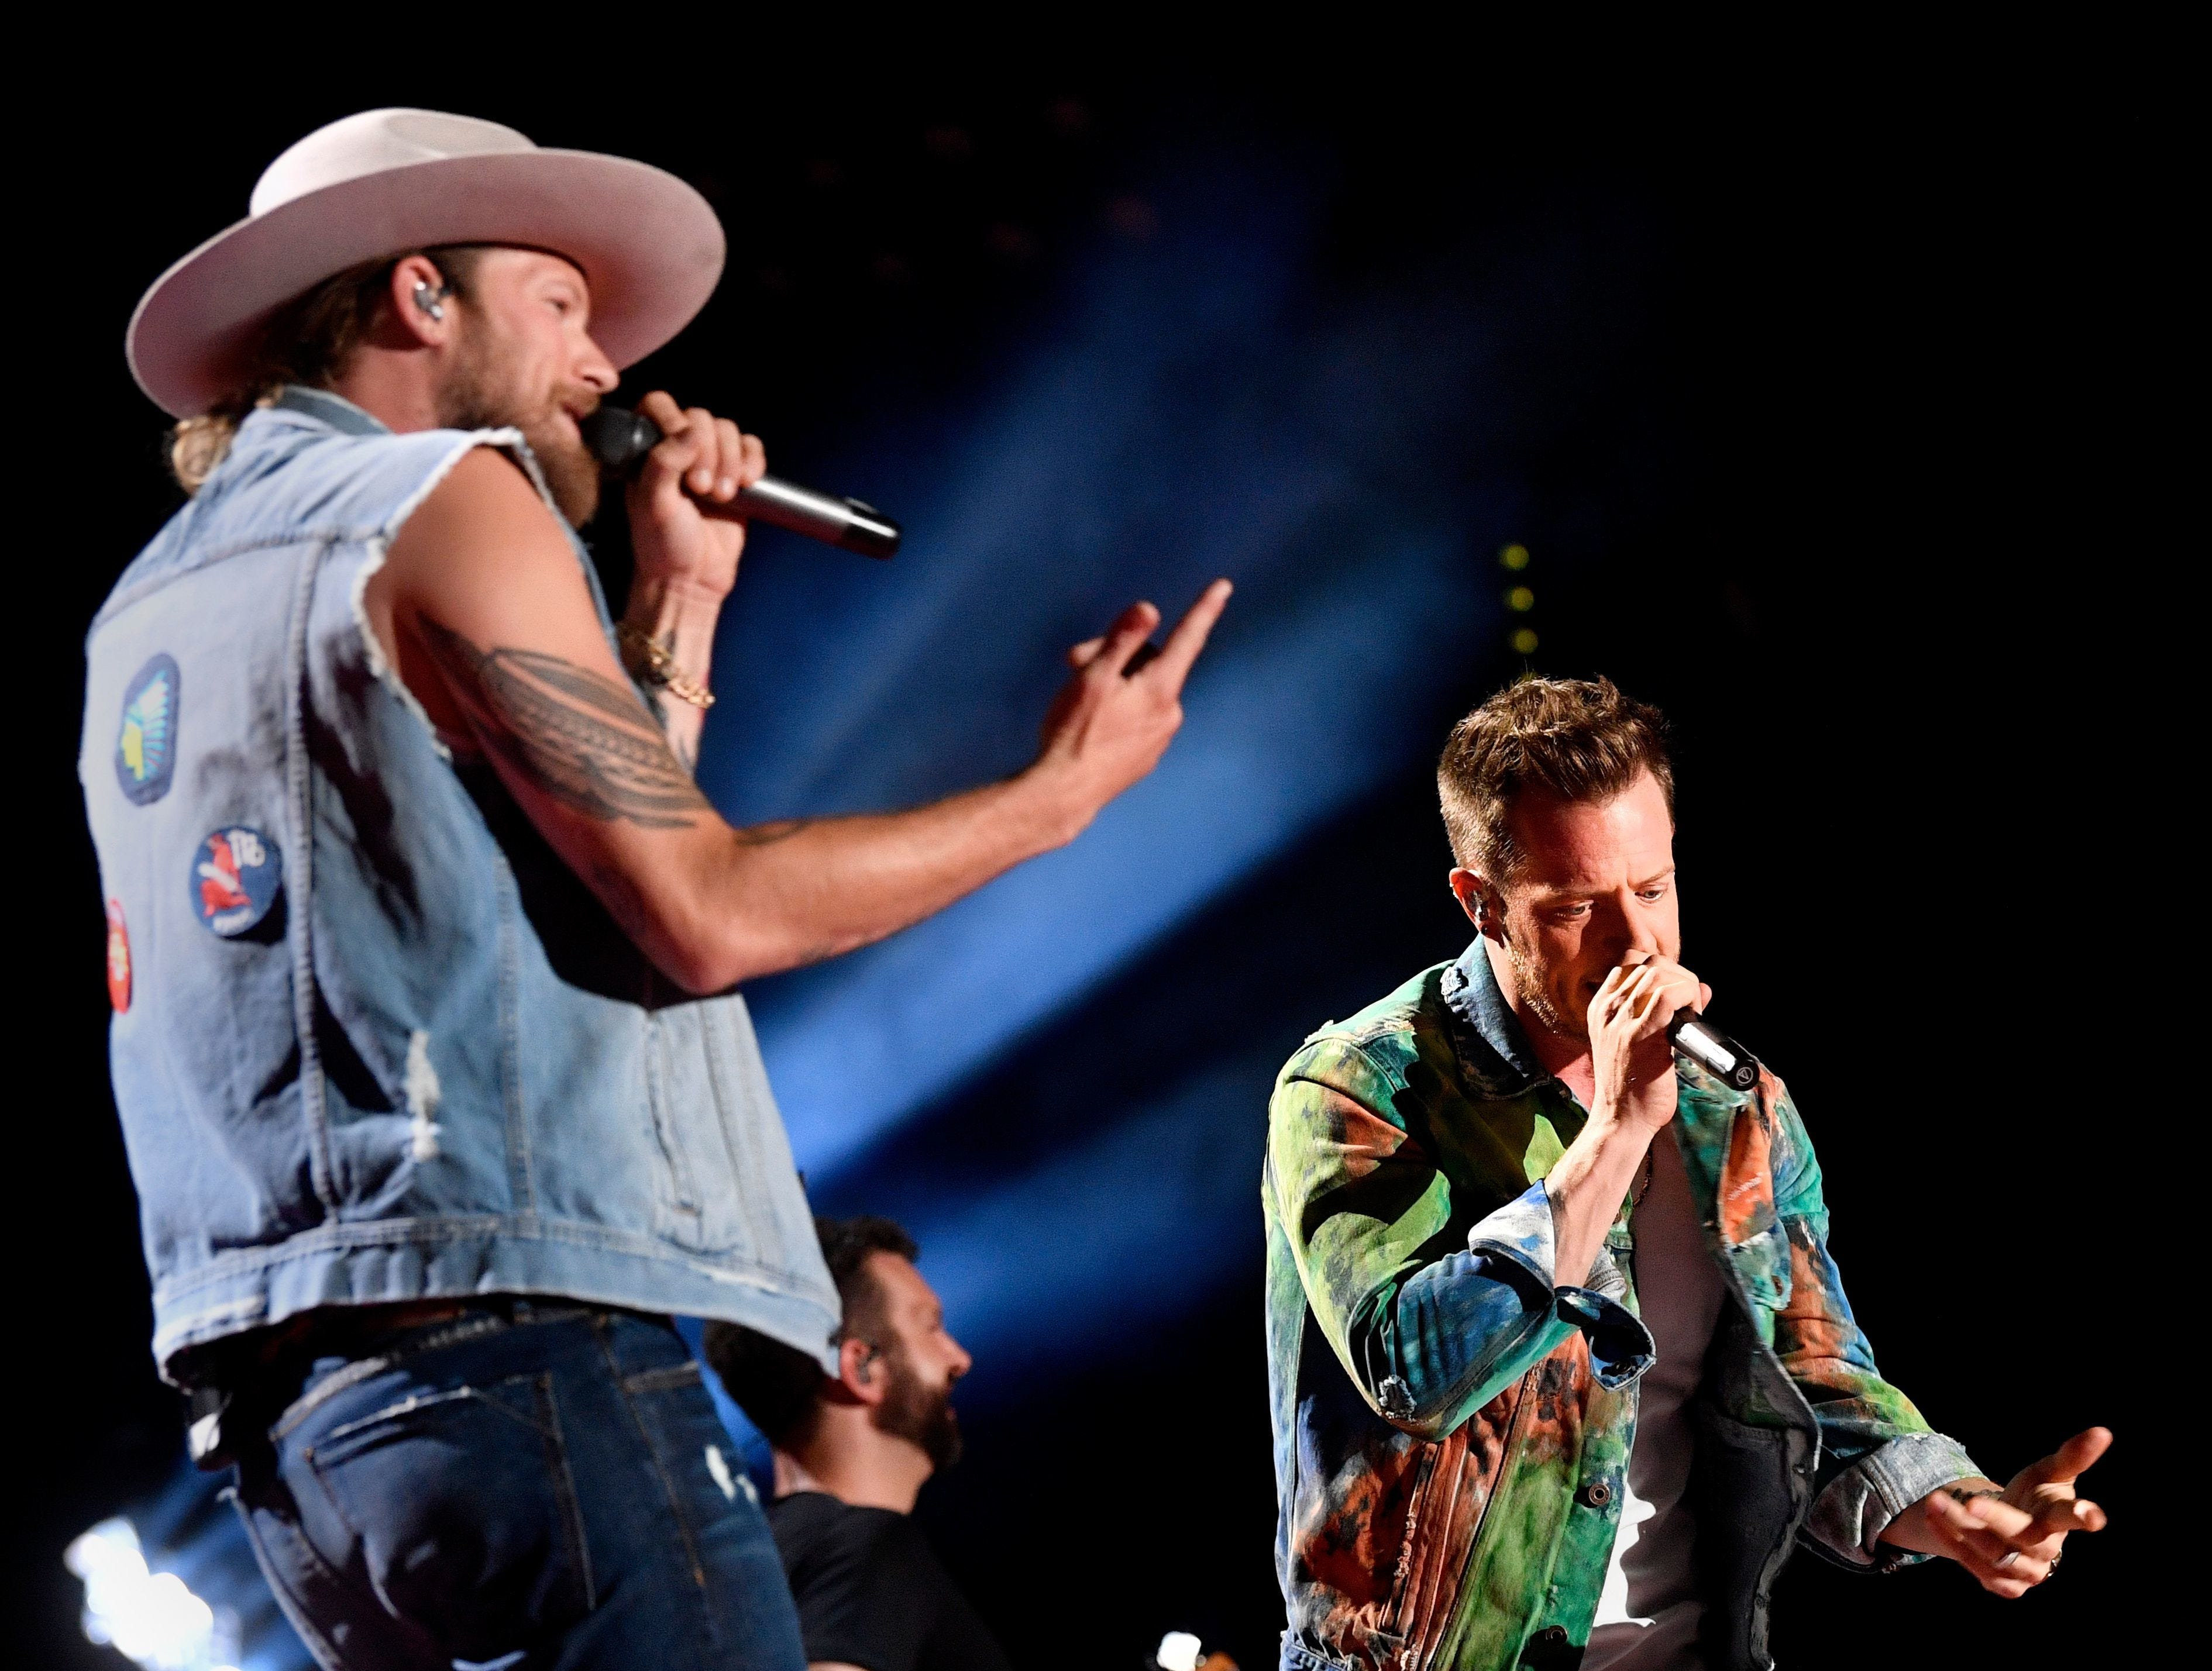 Florida Georgia Line is scheduled to play Nissan Stadium during CMA Fest 2019.